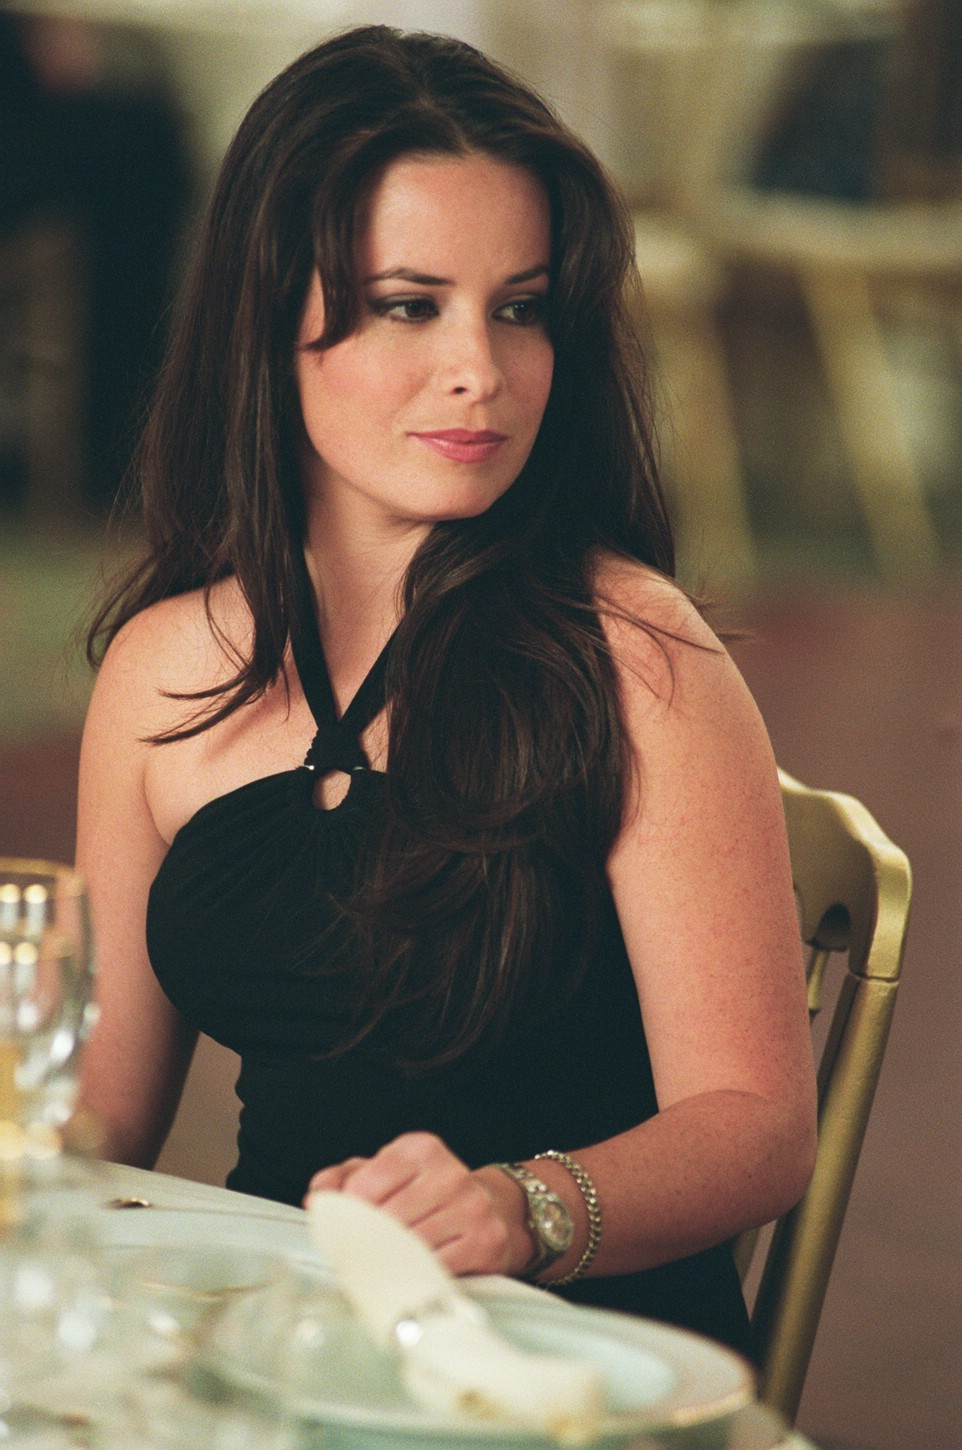 Holly Marie Combs - Holly Marie Combs Photo (510195) - Fanpop